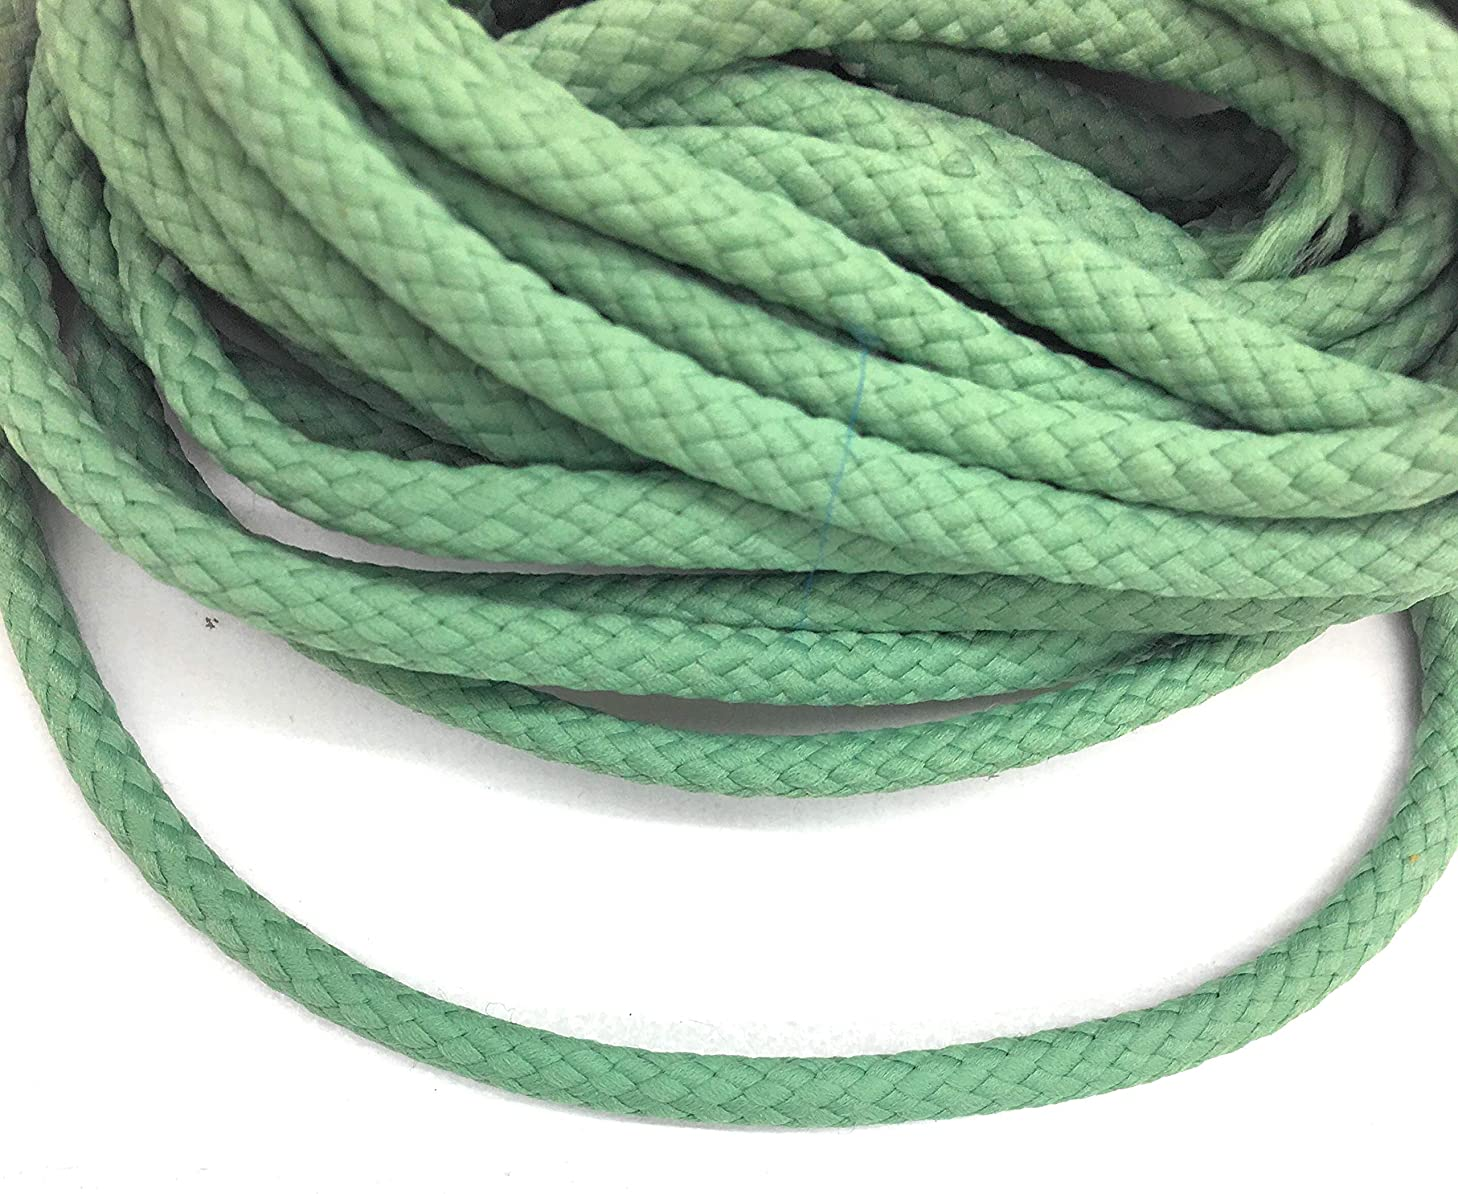 Weave Celadon Green Cord Trims 1/4'' (6mm) Decortive Green Rope 5 Yards